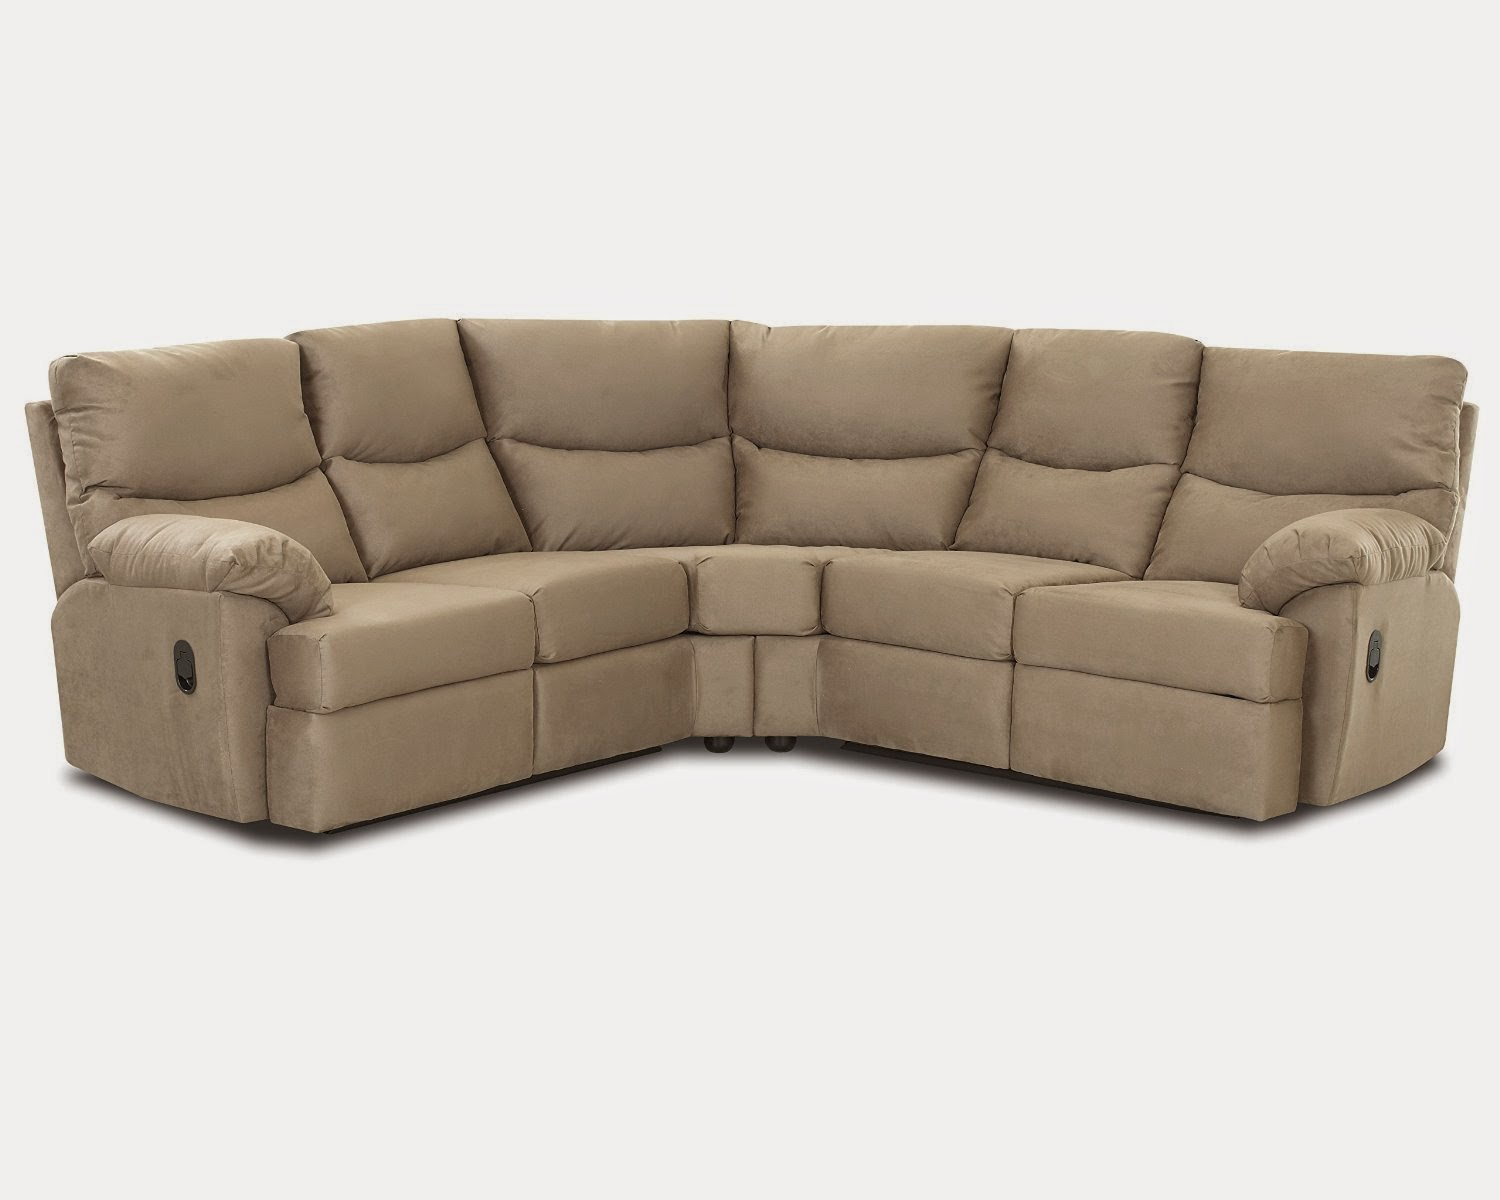 Cheap Recliner Sofas For Sale: April 2015